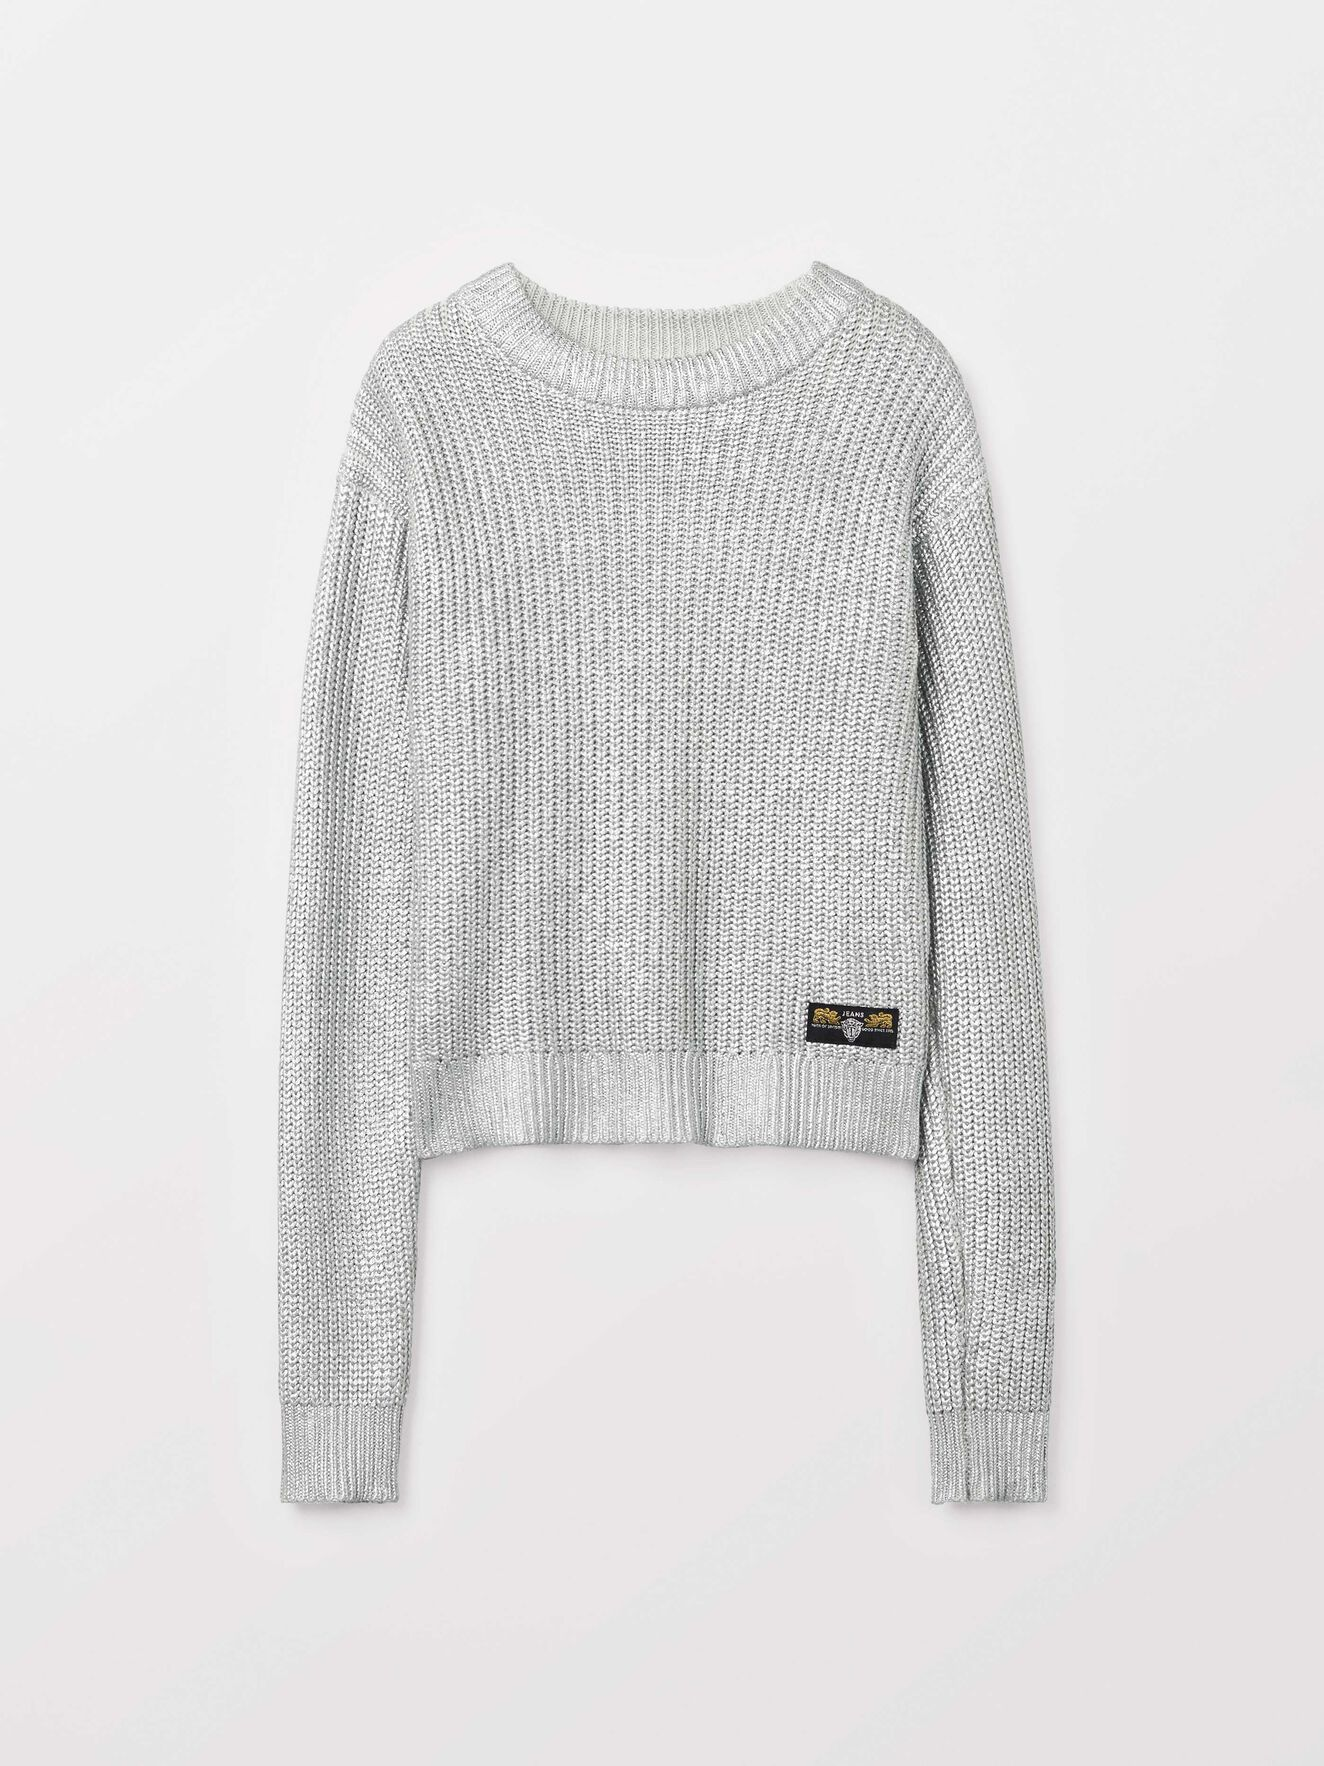 Rosasia Pullover in Mercury Grey from Tiger of Sweden